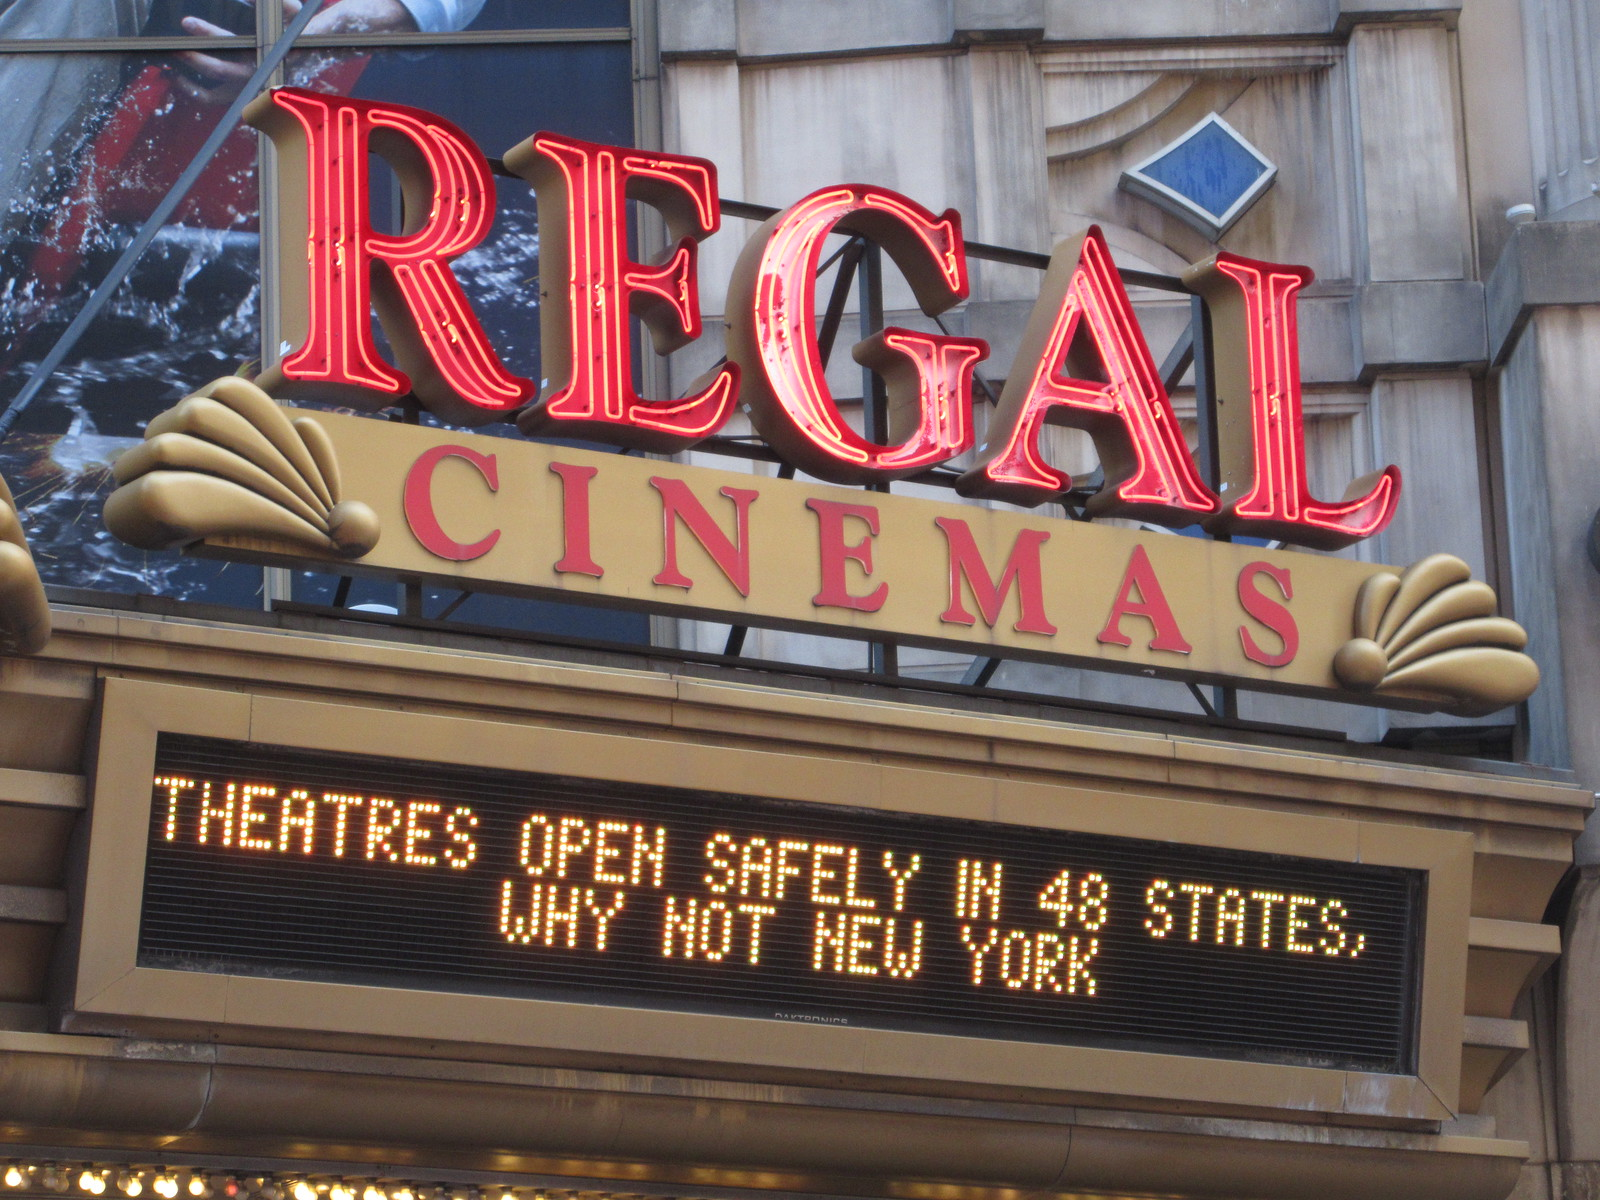 "Regal Cinemas sign says ""Theatres open safely in 48 states, why not New York"""